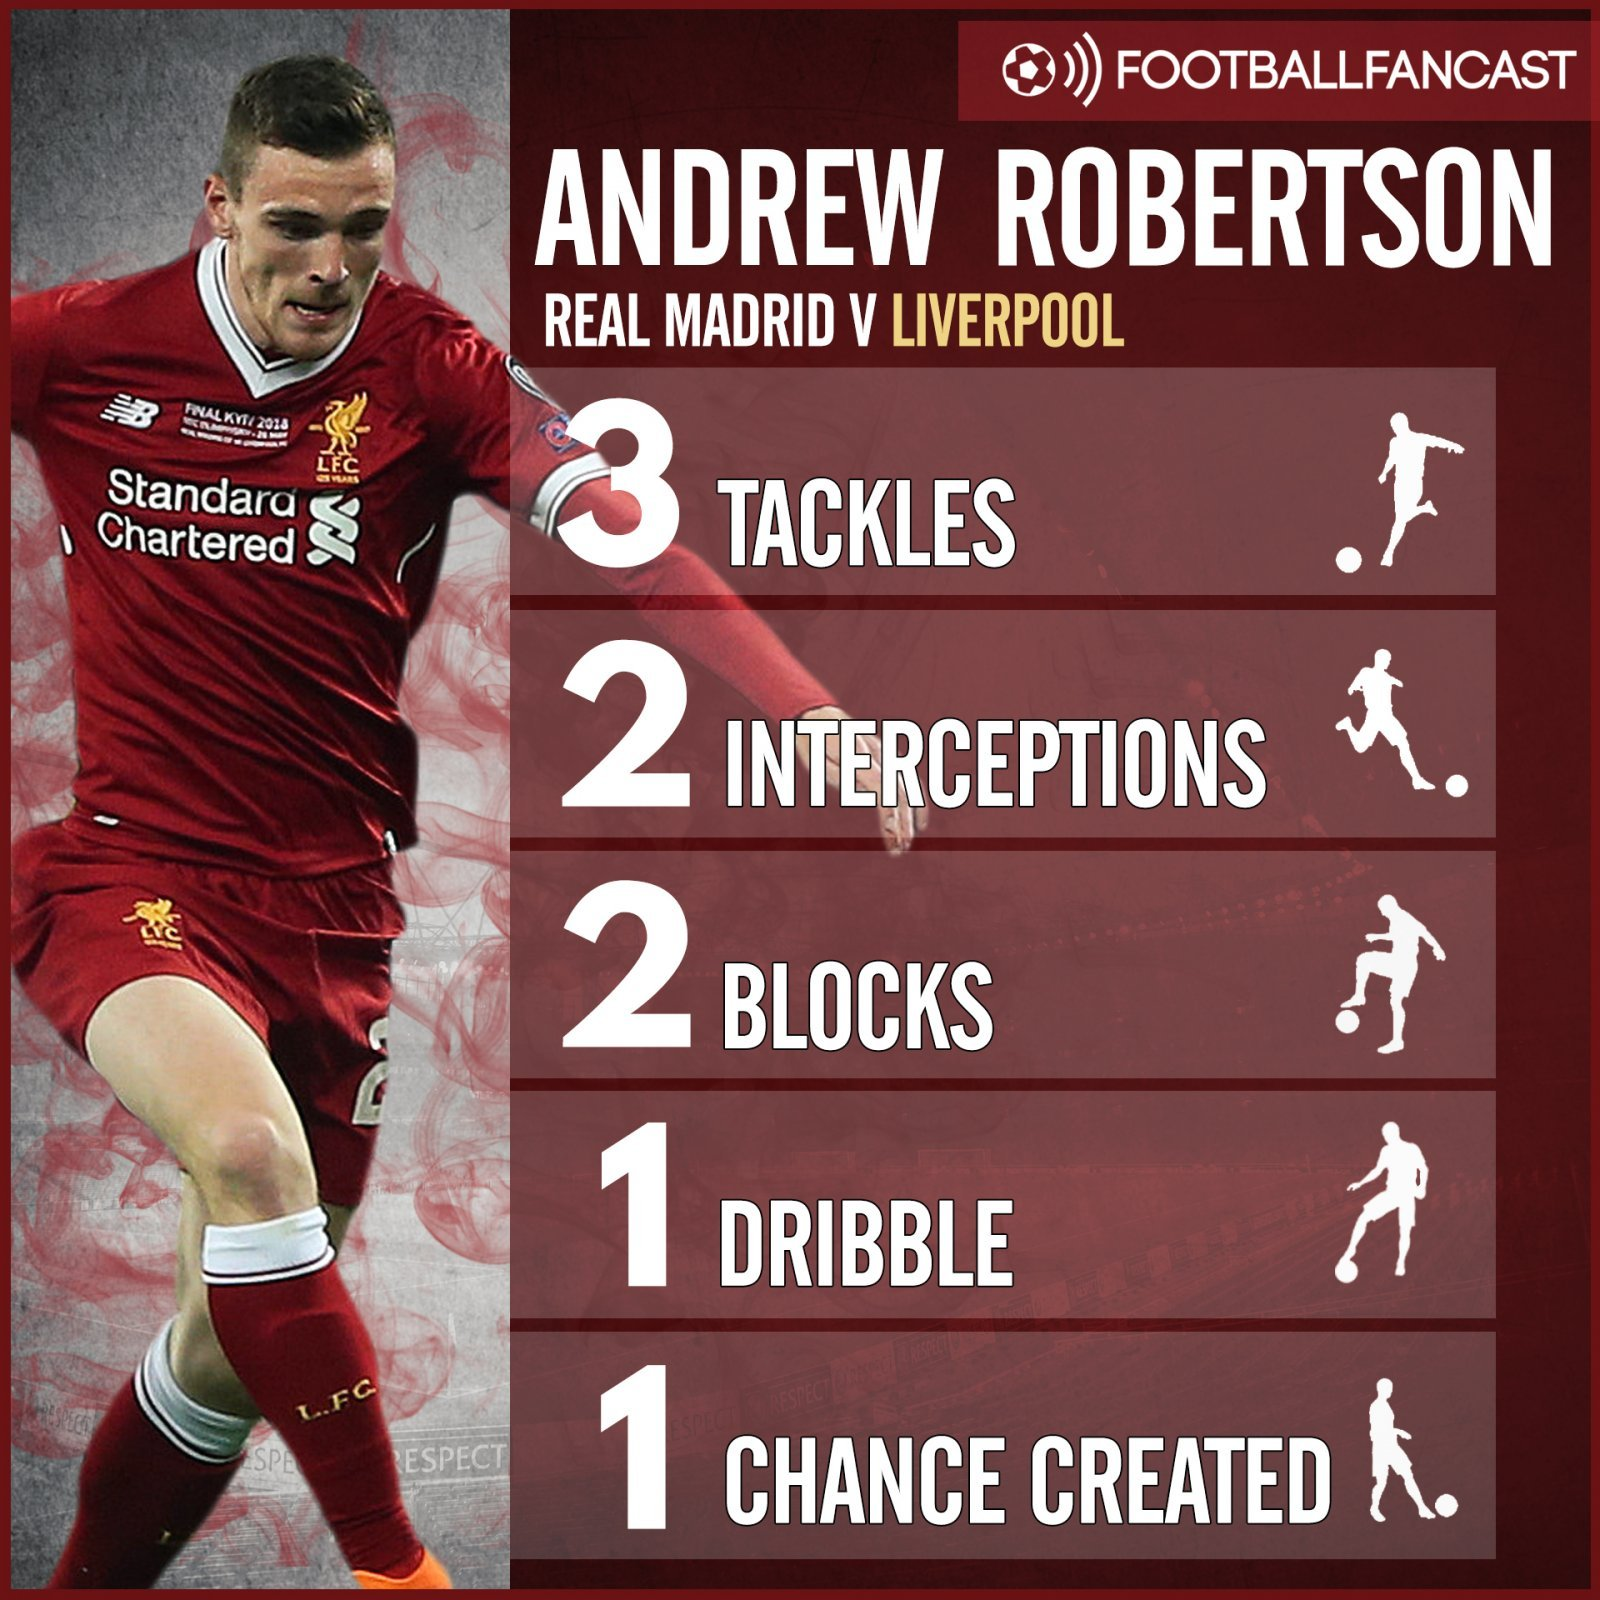 Andrew Robertson's stats from Champions League final